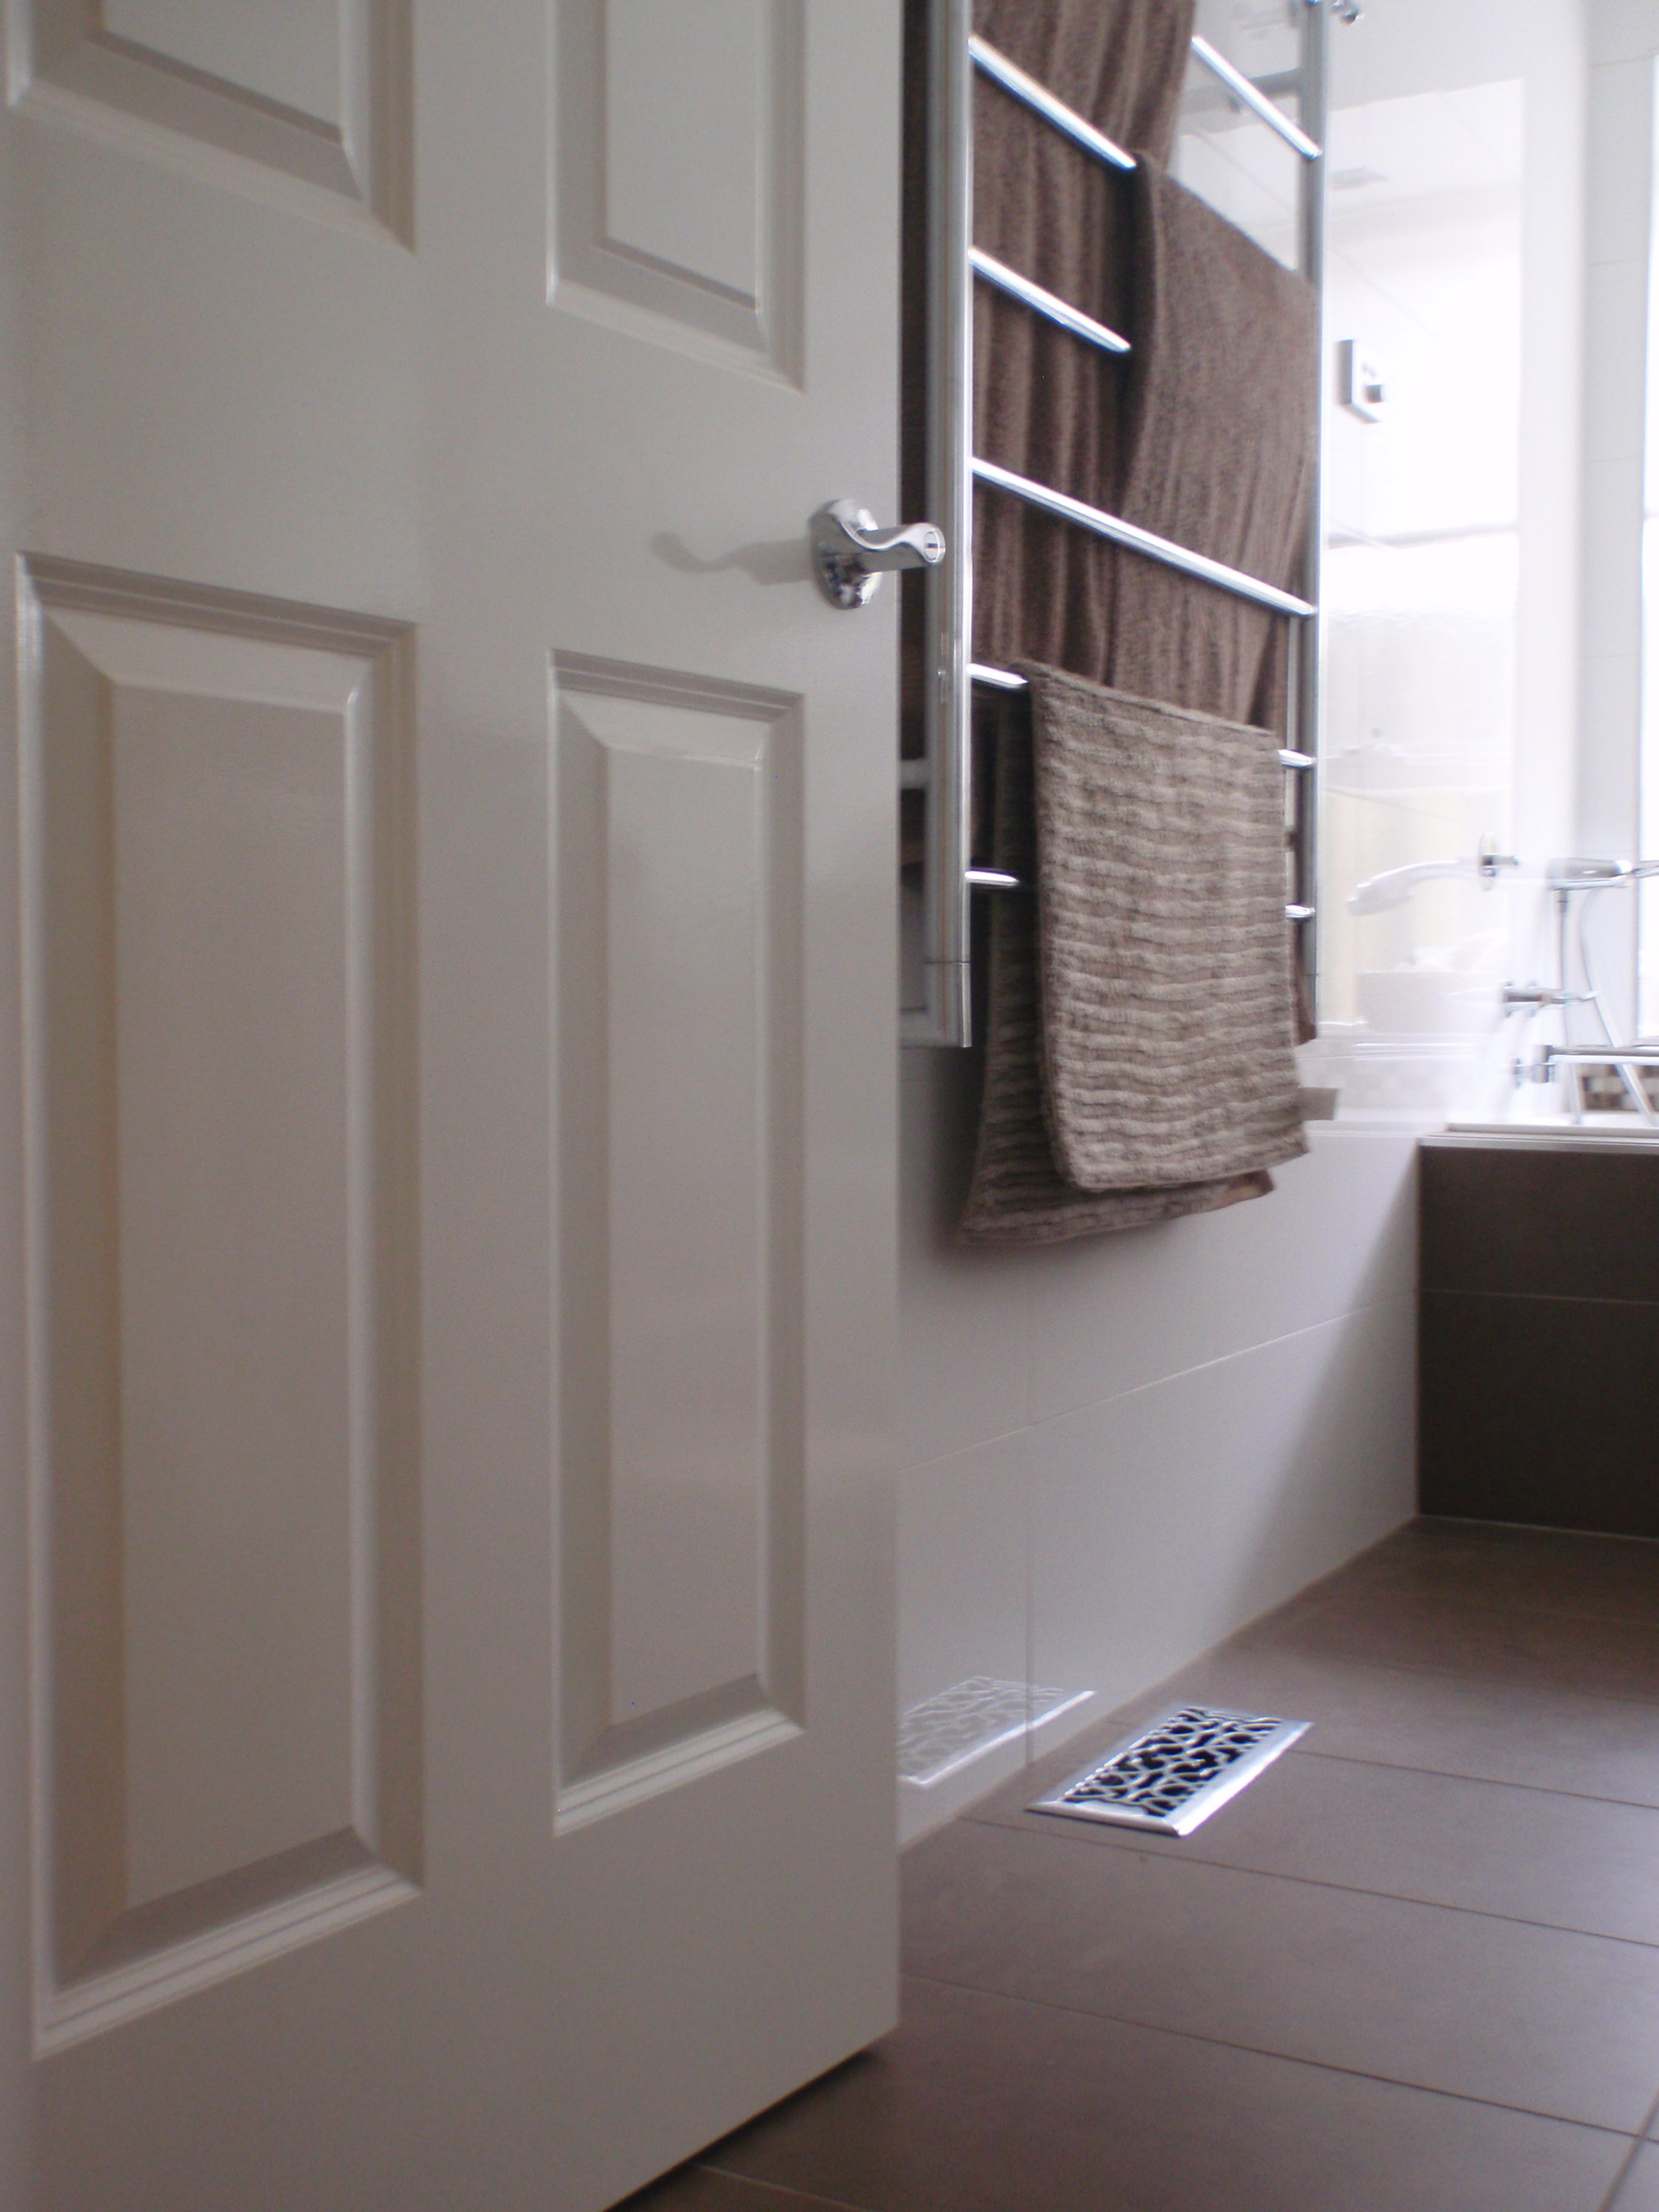 Welcome to my bathroom... Brown and white tiles, heated towel rail, fluffy towels, heaven...